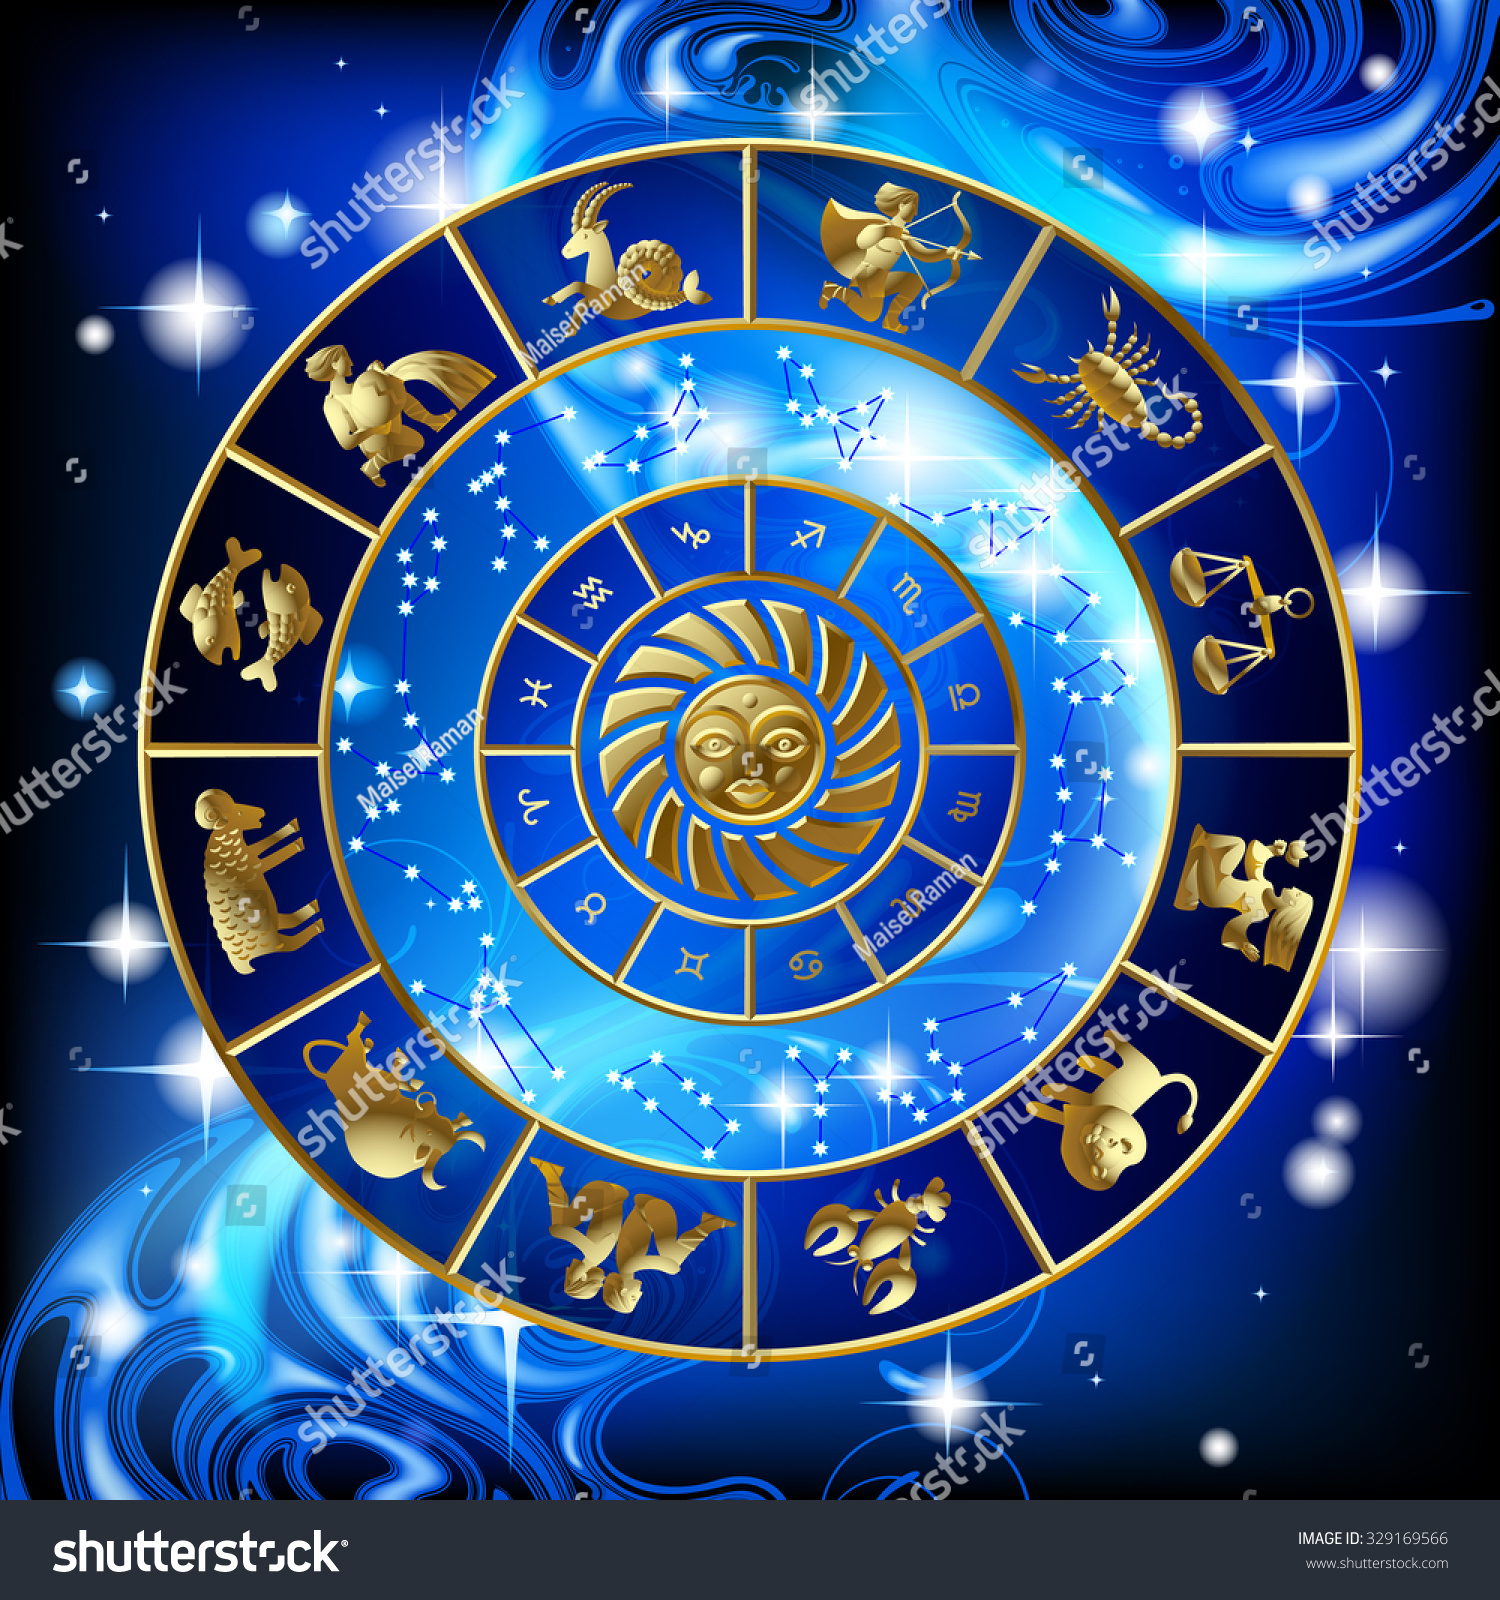 Calendar Design Zodiac : Gold zodiac circle signs constellations calendar stock